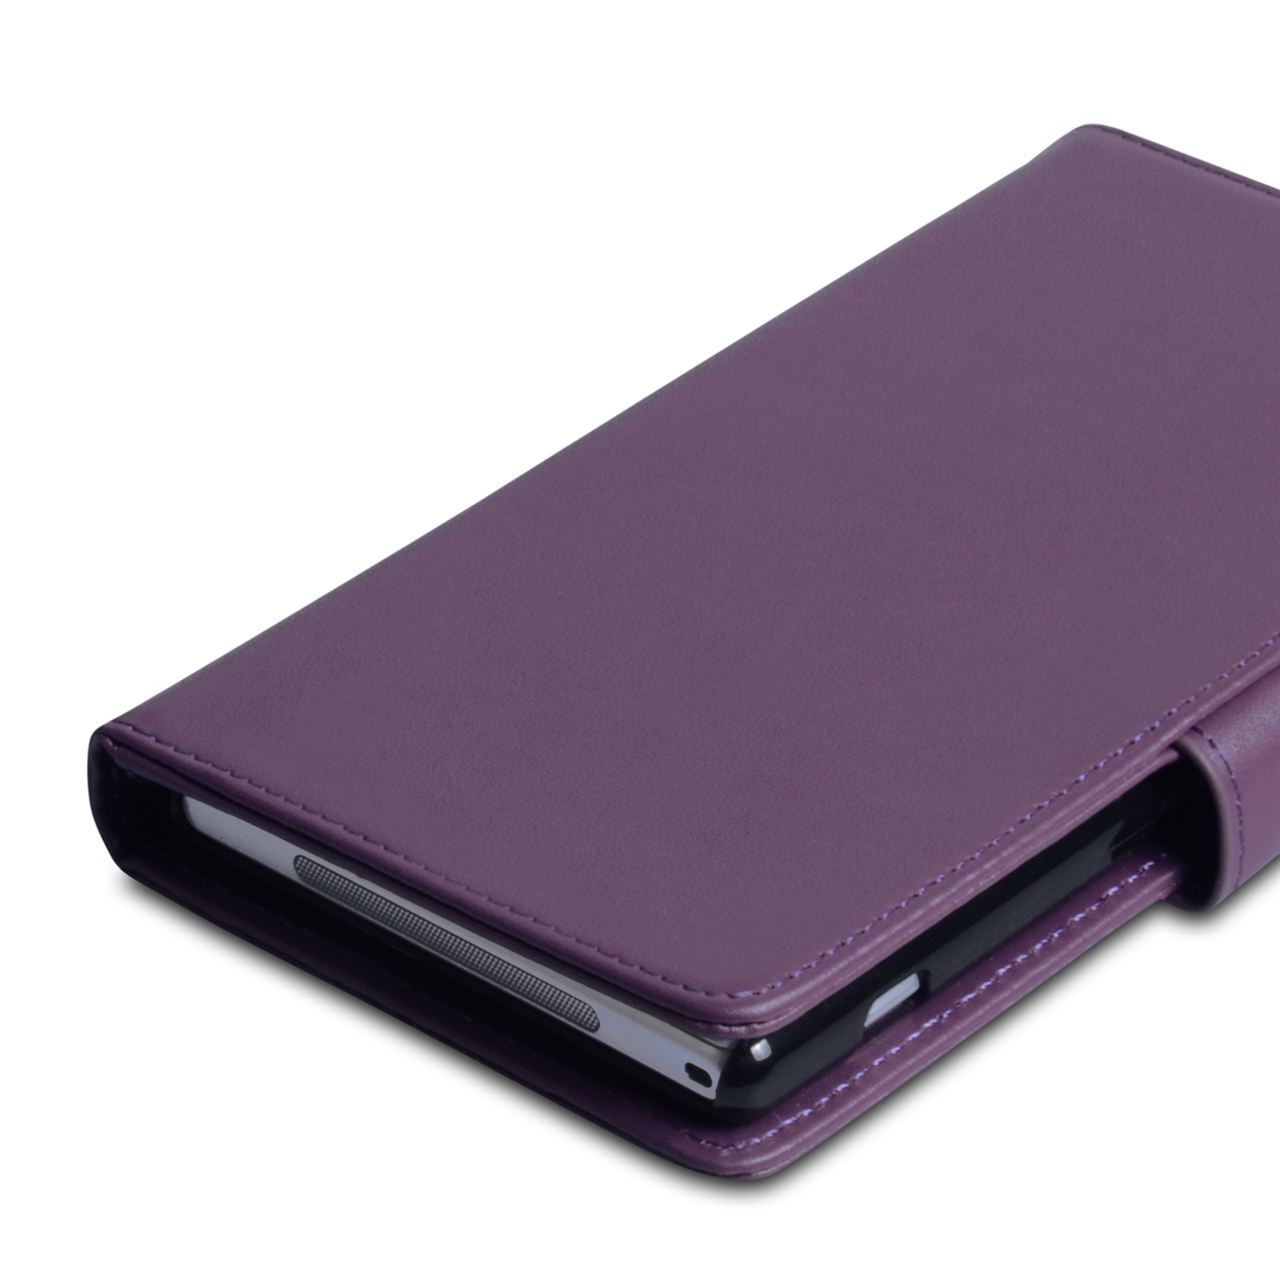 YouSave Accessories Sony Xperia Z1 Leather Effect Wallet - Purple